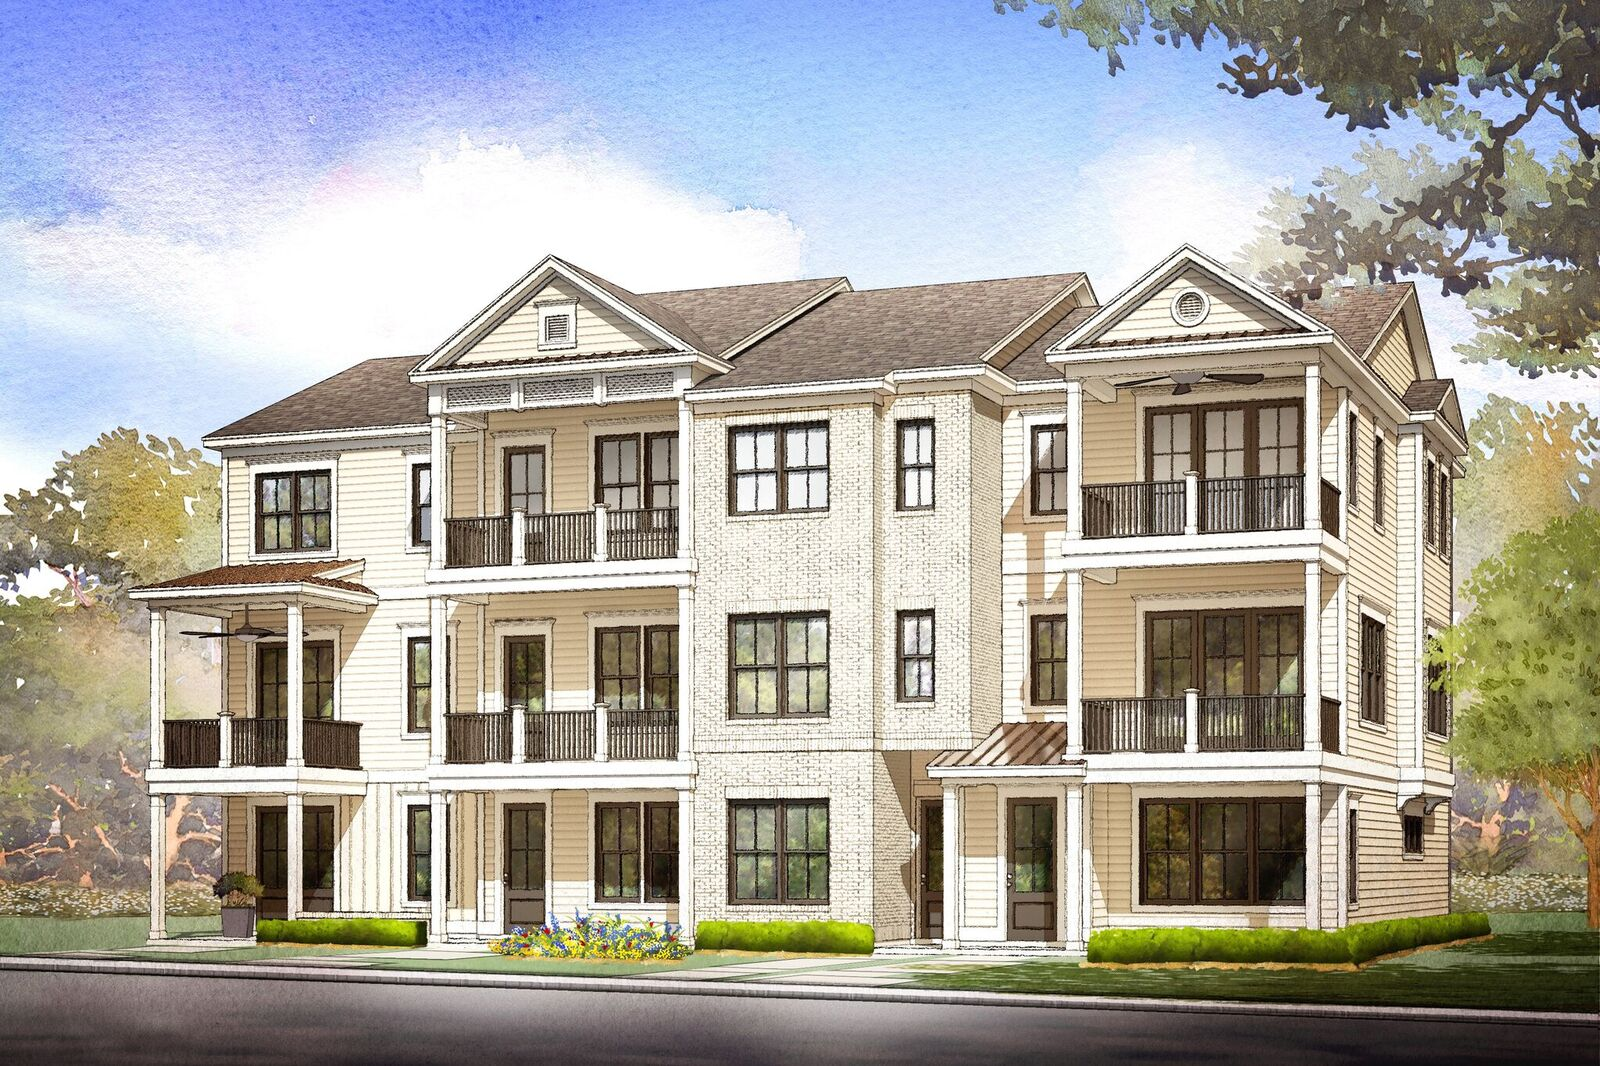 Townhouse for Sale at Elegant New Waterfront Community 12 Hobie Run Wilmington, North Carolina, 28412 United States